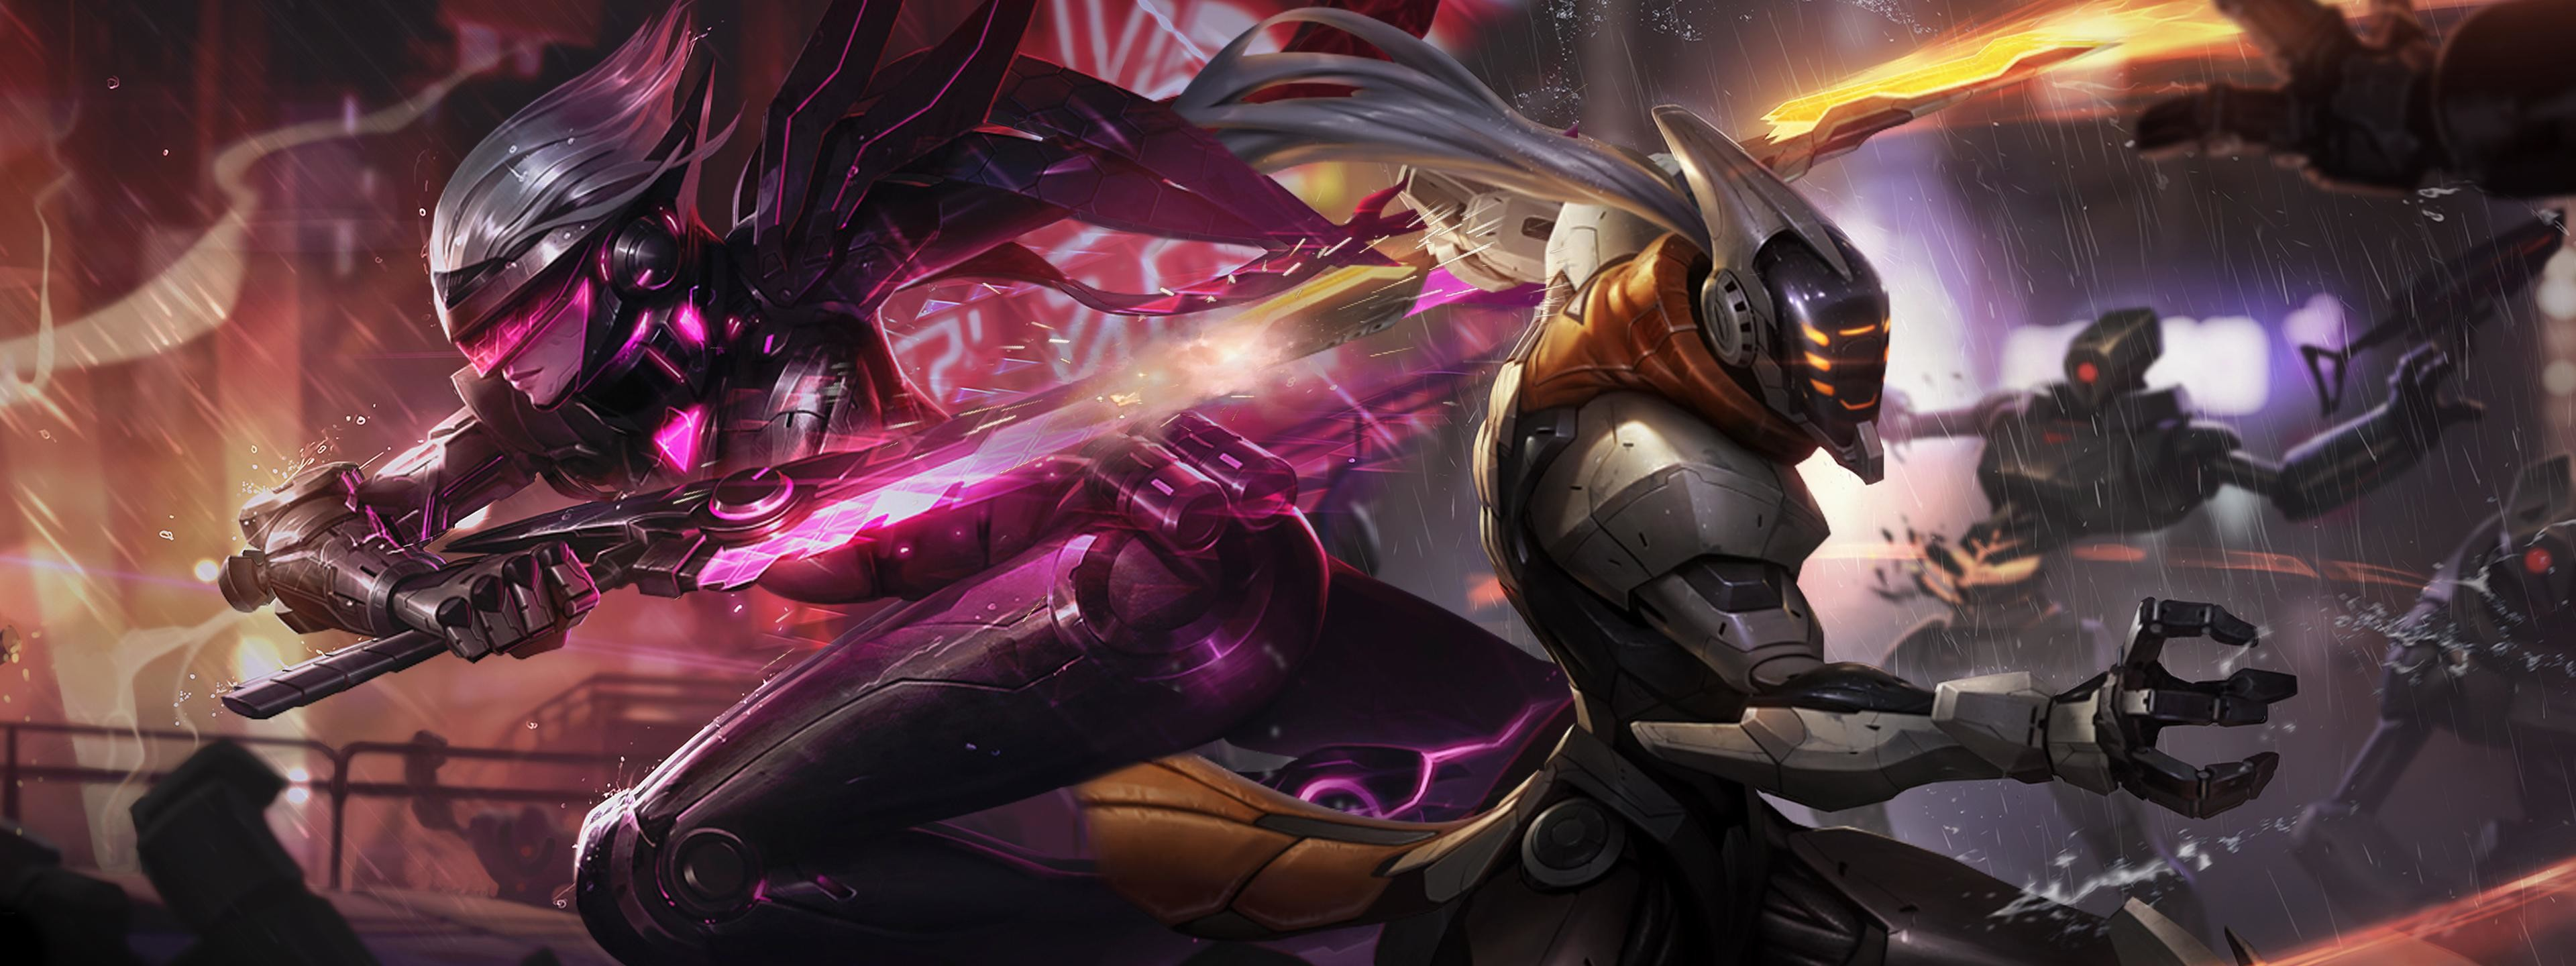 3840x1440 Video Game - League Of Legends Video Game Fiora (League Of Legends) Master  Yi